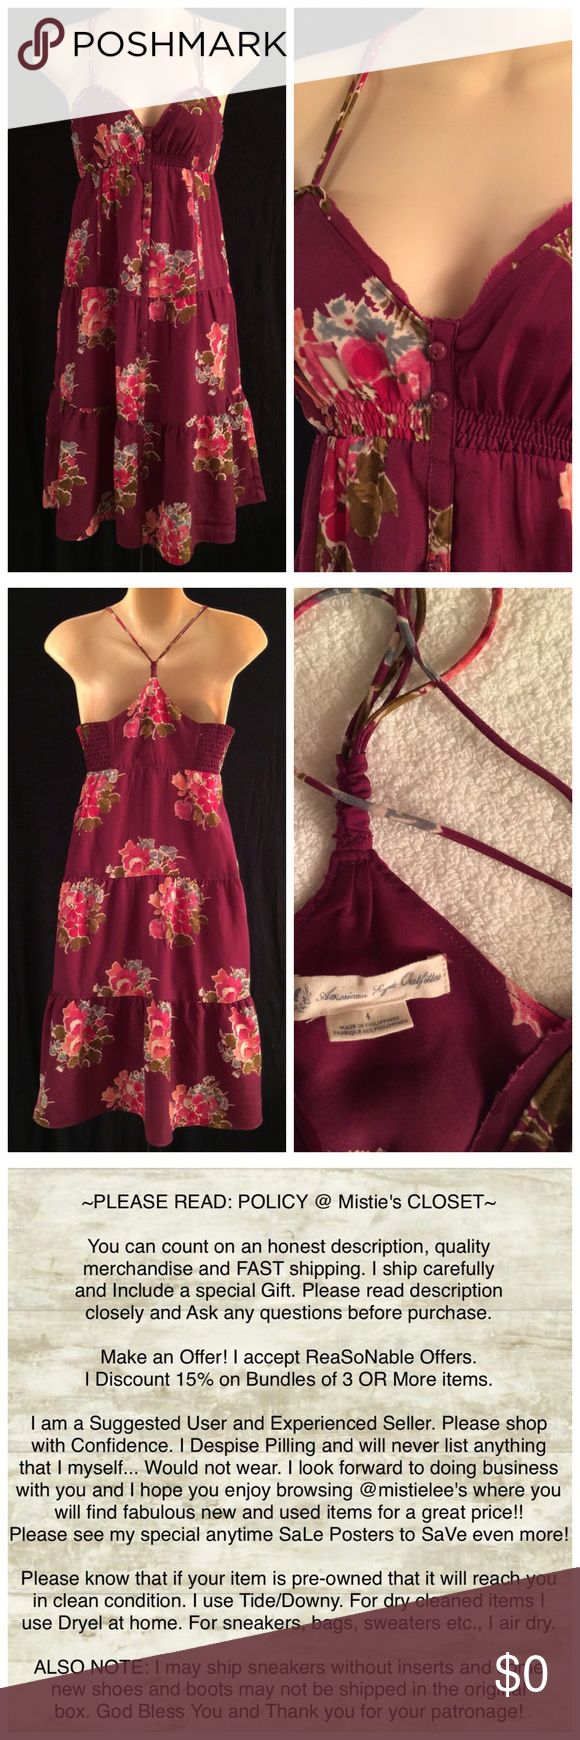 "Raspberry/Pinks AE Outfitters FuN Sun Dress Size 4 Made by: AE Outfitters Size 4 Raspberry Floral w/Pinks Sweetheart Neckline with extra crude edge hem design Double Tiny Strap Racer Back Style Silky Polyester Button Front Empire Waist Drop Layer Sun Dress. Back has Elastic Sides for a perfect fit. Chest and back are lined. Measurements: Underarm to Underarm 15.5""+Stretch Elastic Underarm to Hem Length 28.5"". Pre-Loved: Purchased this dress w/another color. This one may have been worn twice…"